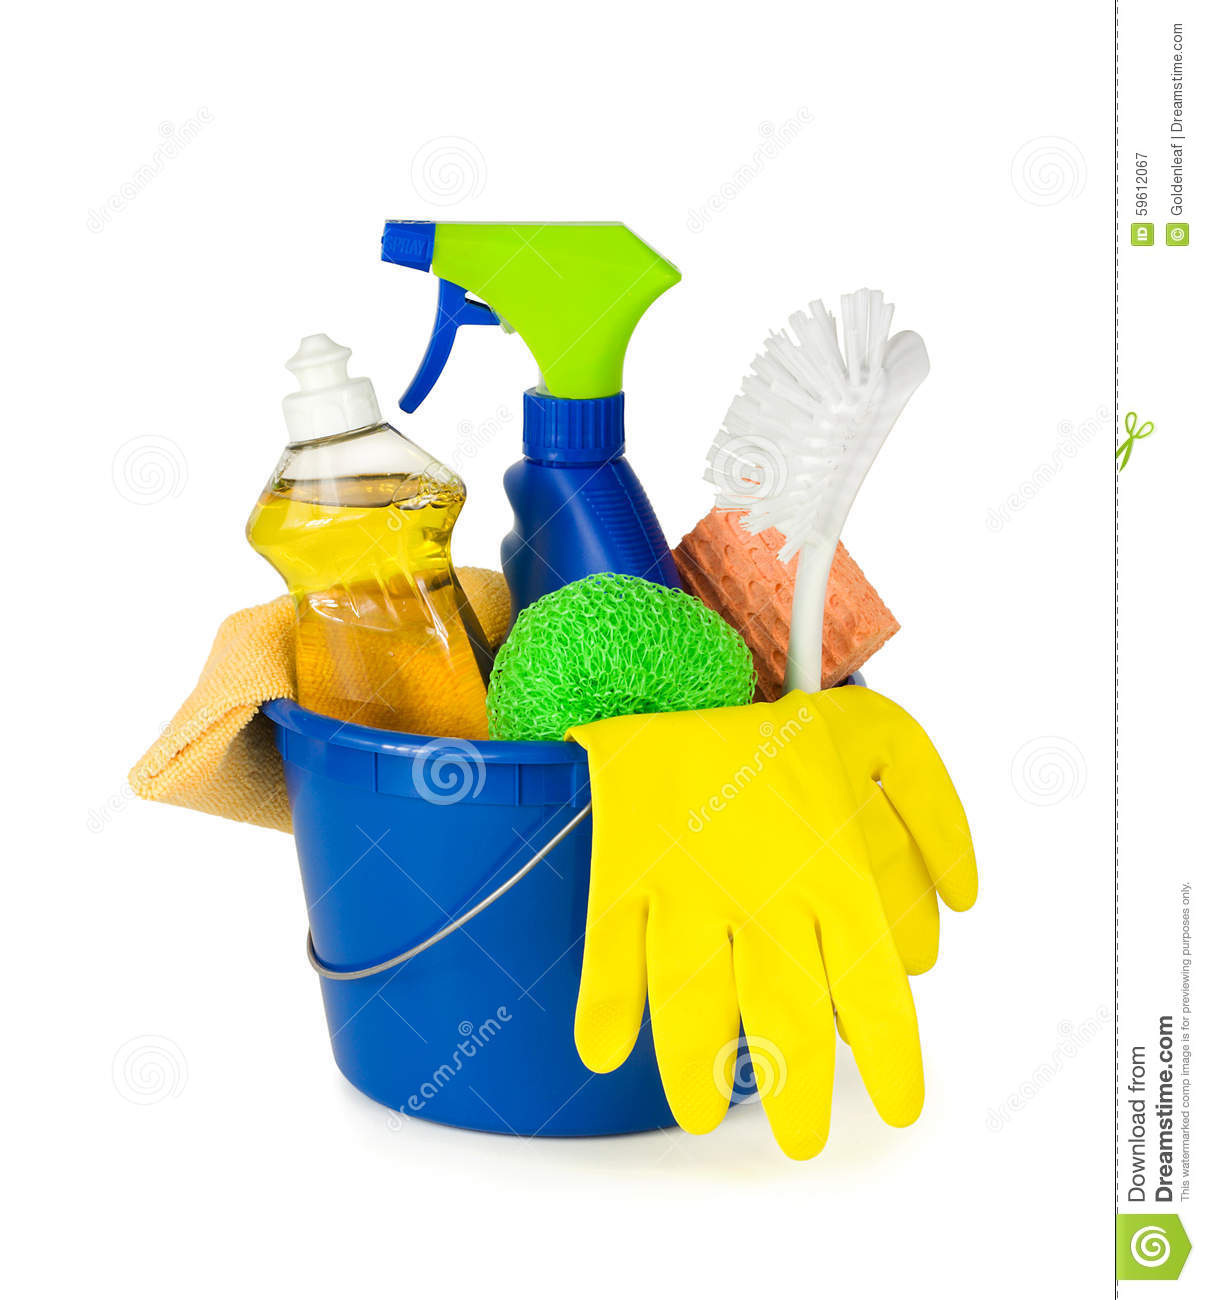 Household Supplies: Cleaning Supplies In A Bucket Stock Image